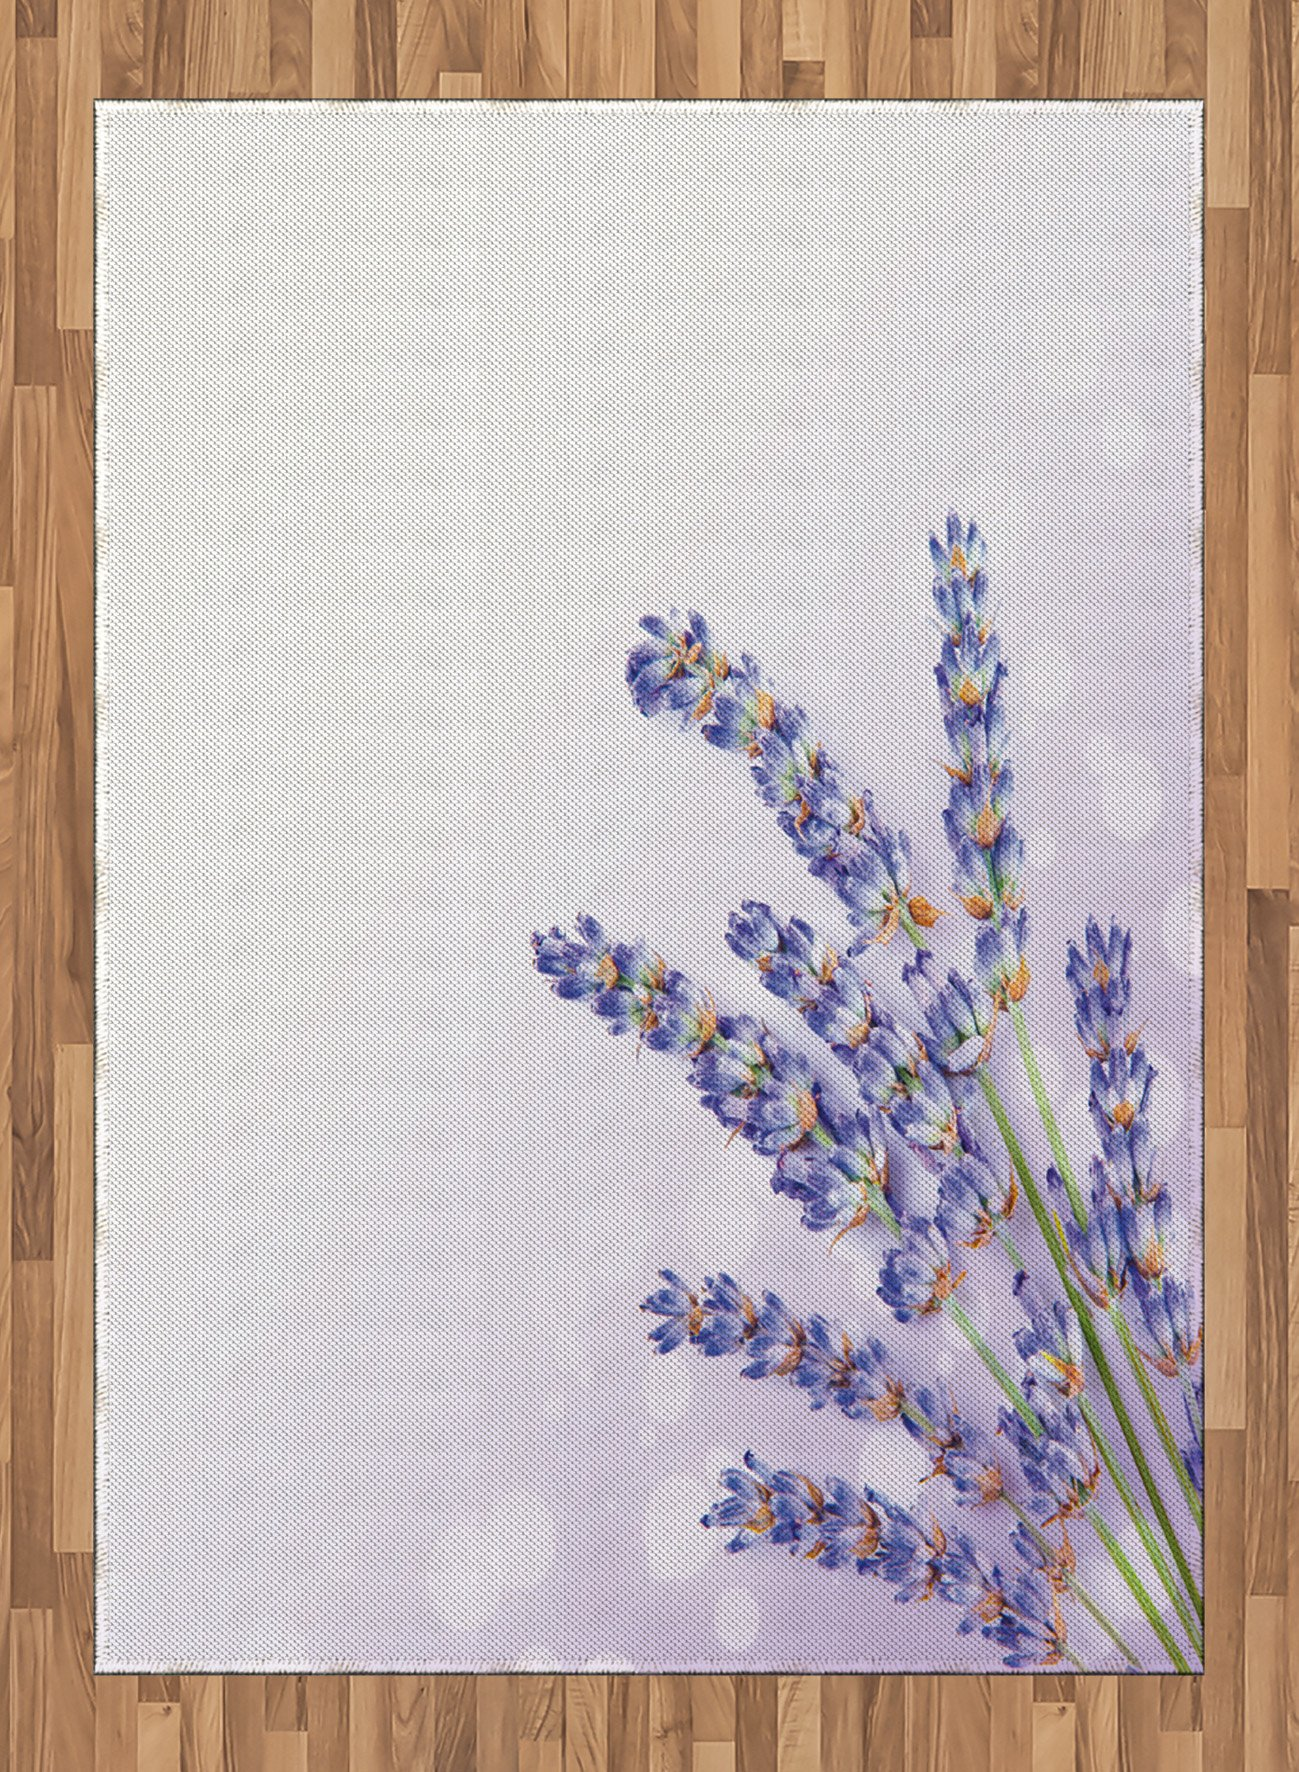 Lavender Area Rug by Ambesonne, Little Posy of Medicinal Herb Fresh Plant of Purple Flower Spa Aromatheraphy Organic, Flat Woven Accent Rug for Living Room Bedroom Dining Room, 5.2 x 7.5 FT, Lavander